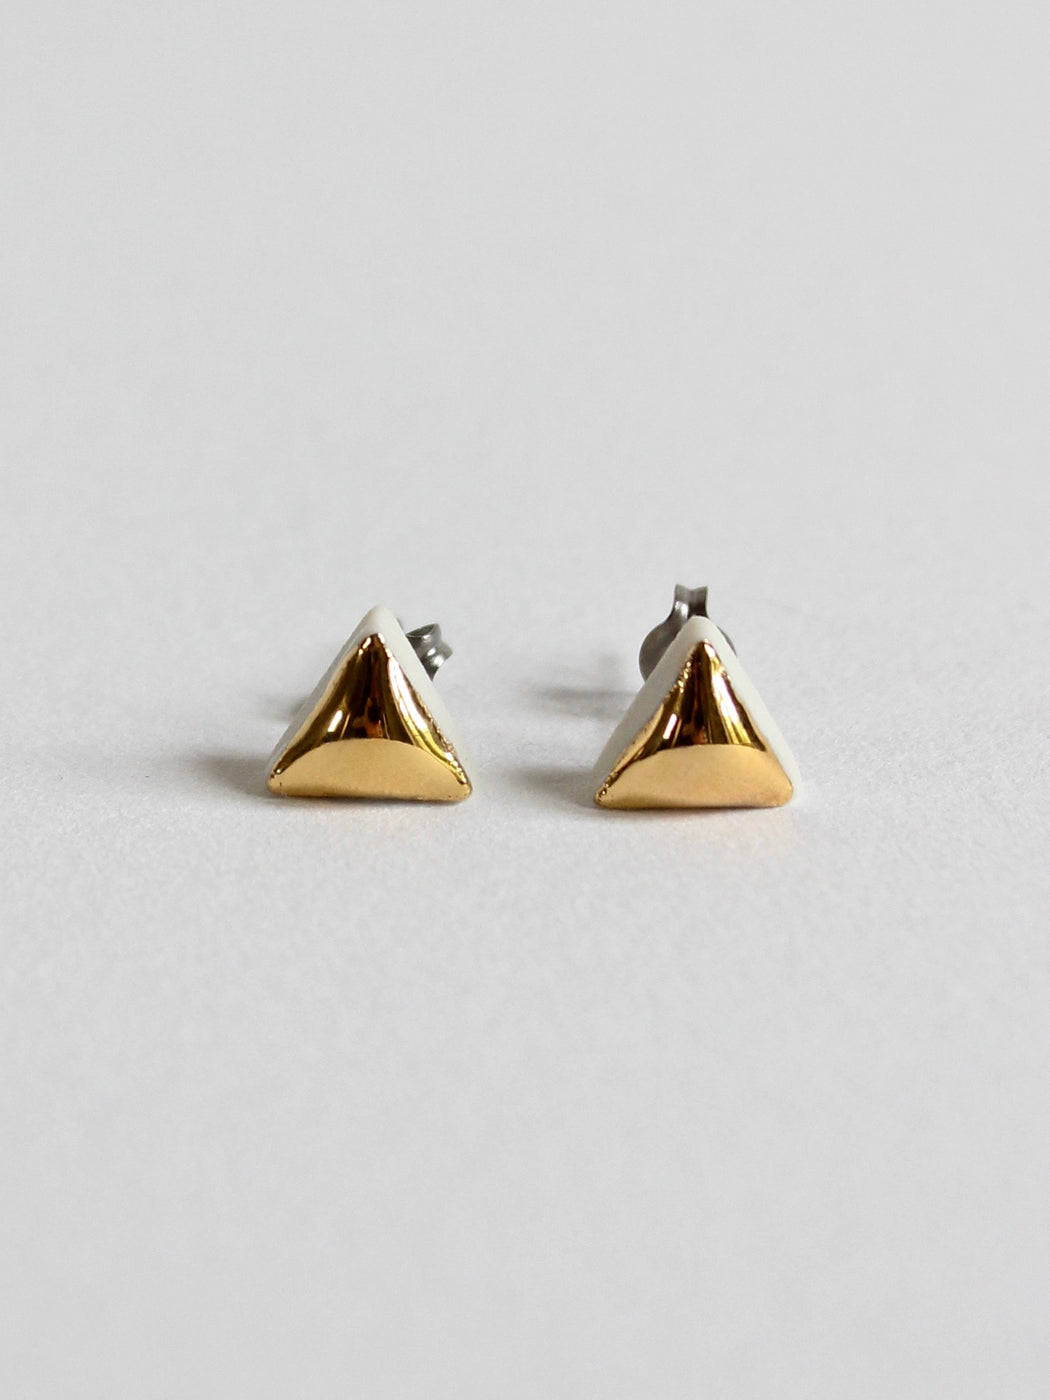 Ceramic Triangle Stud Earrings